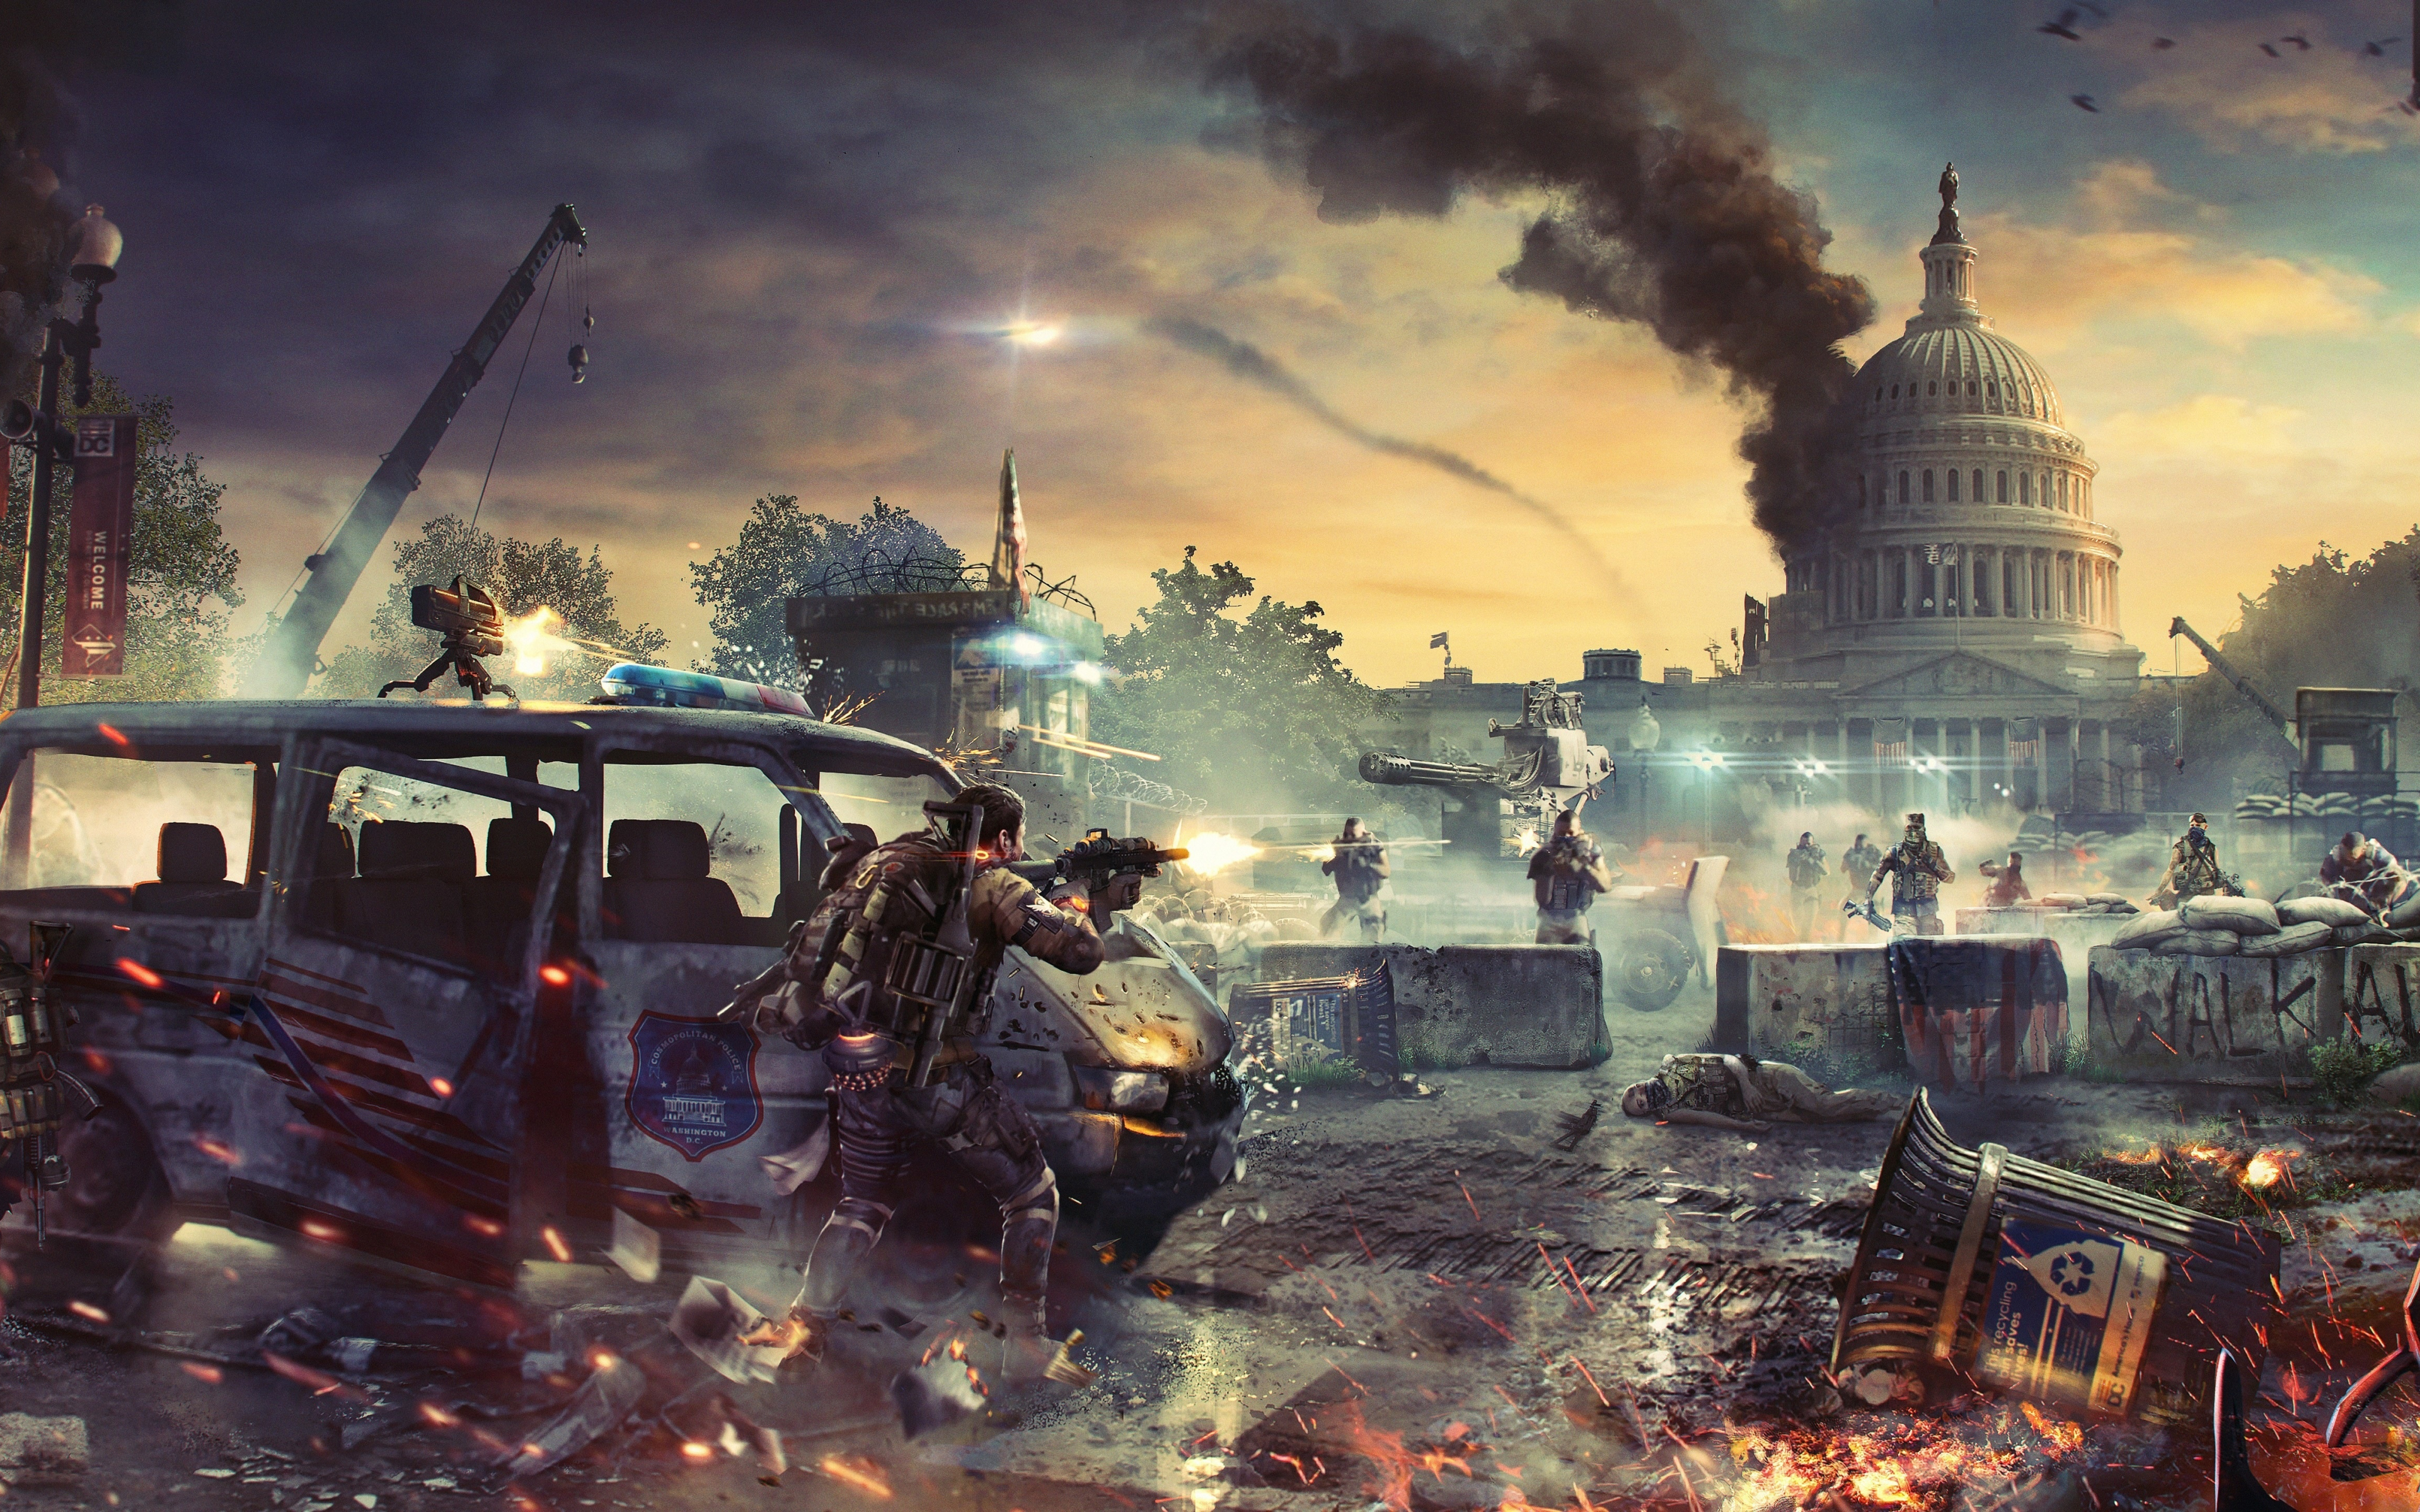 Download 3840x2400 wallpaper tom clancy's the division 2 ...